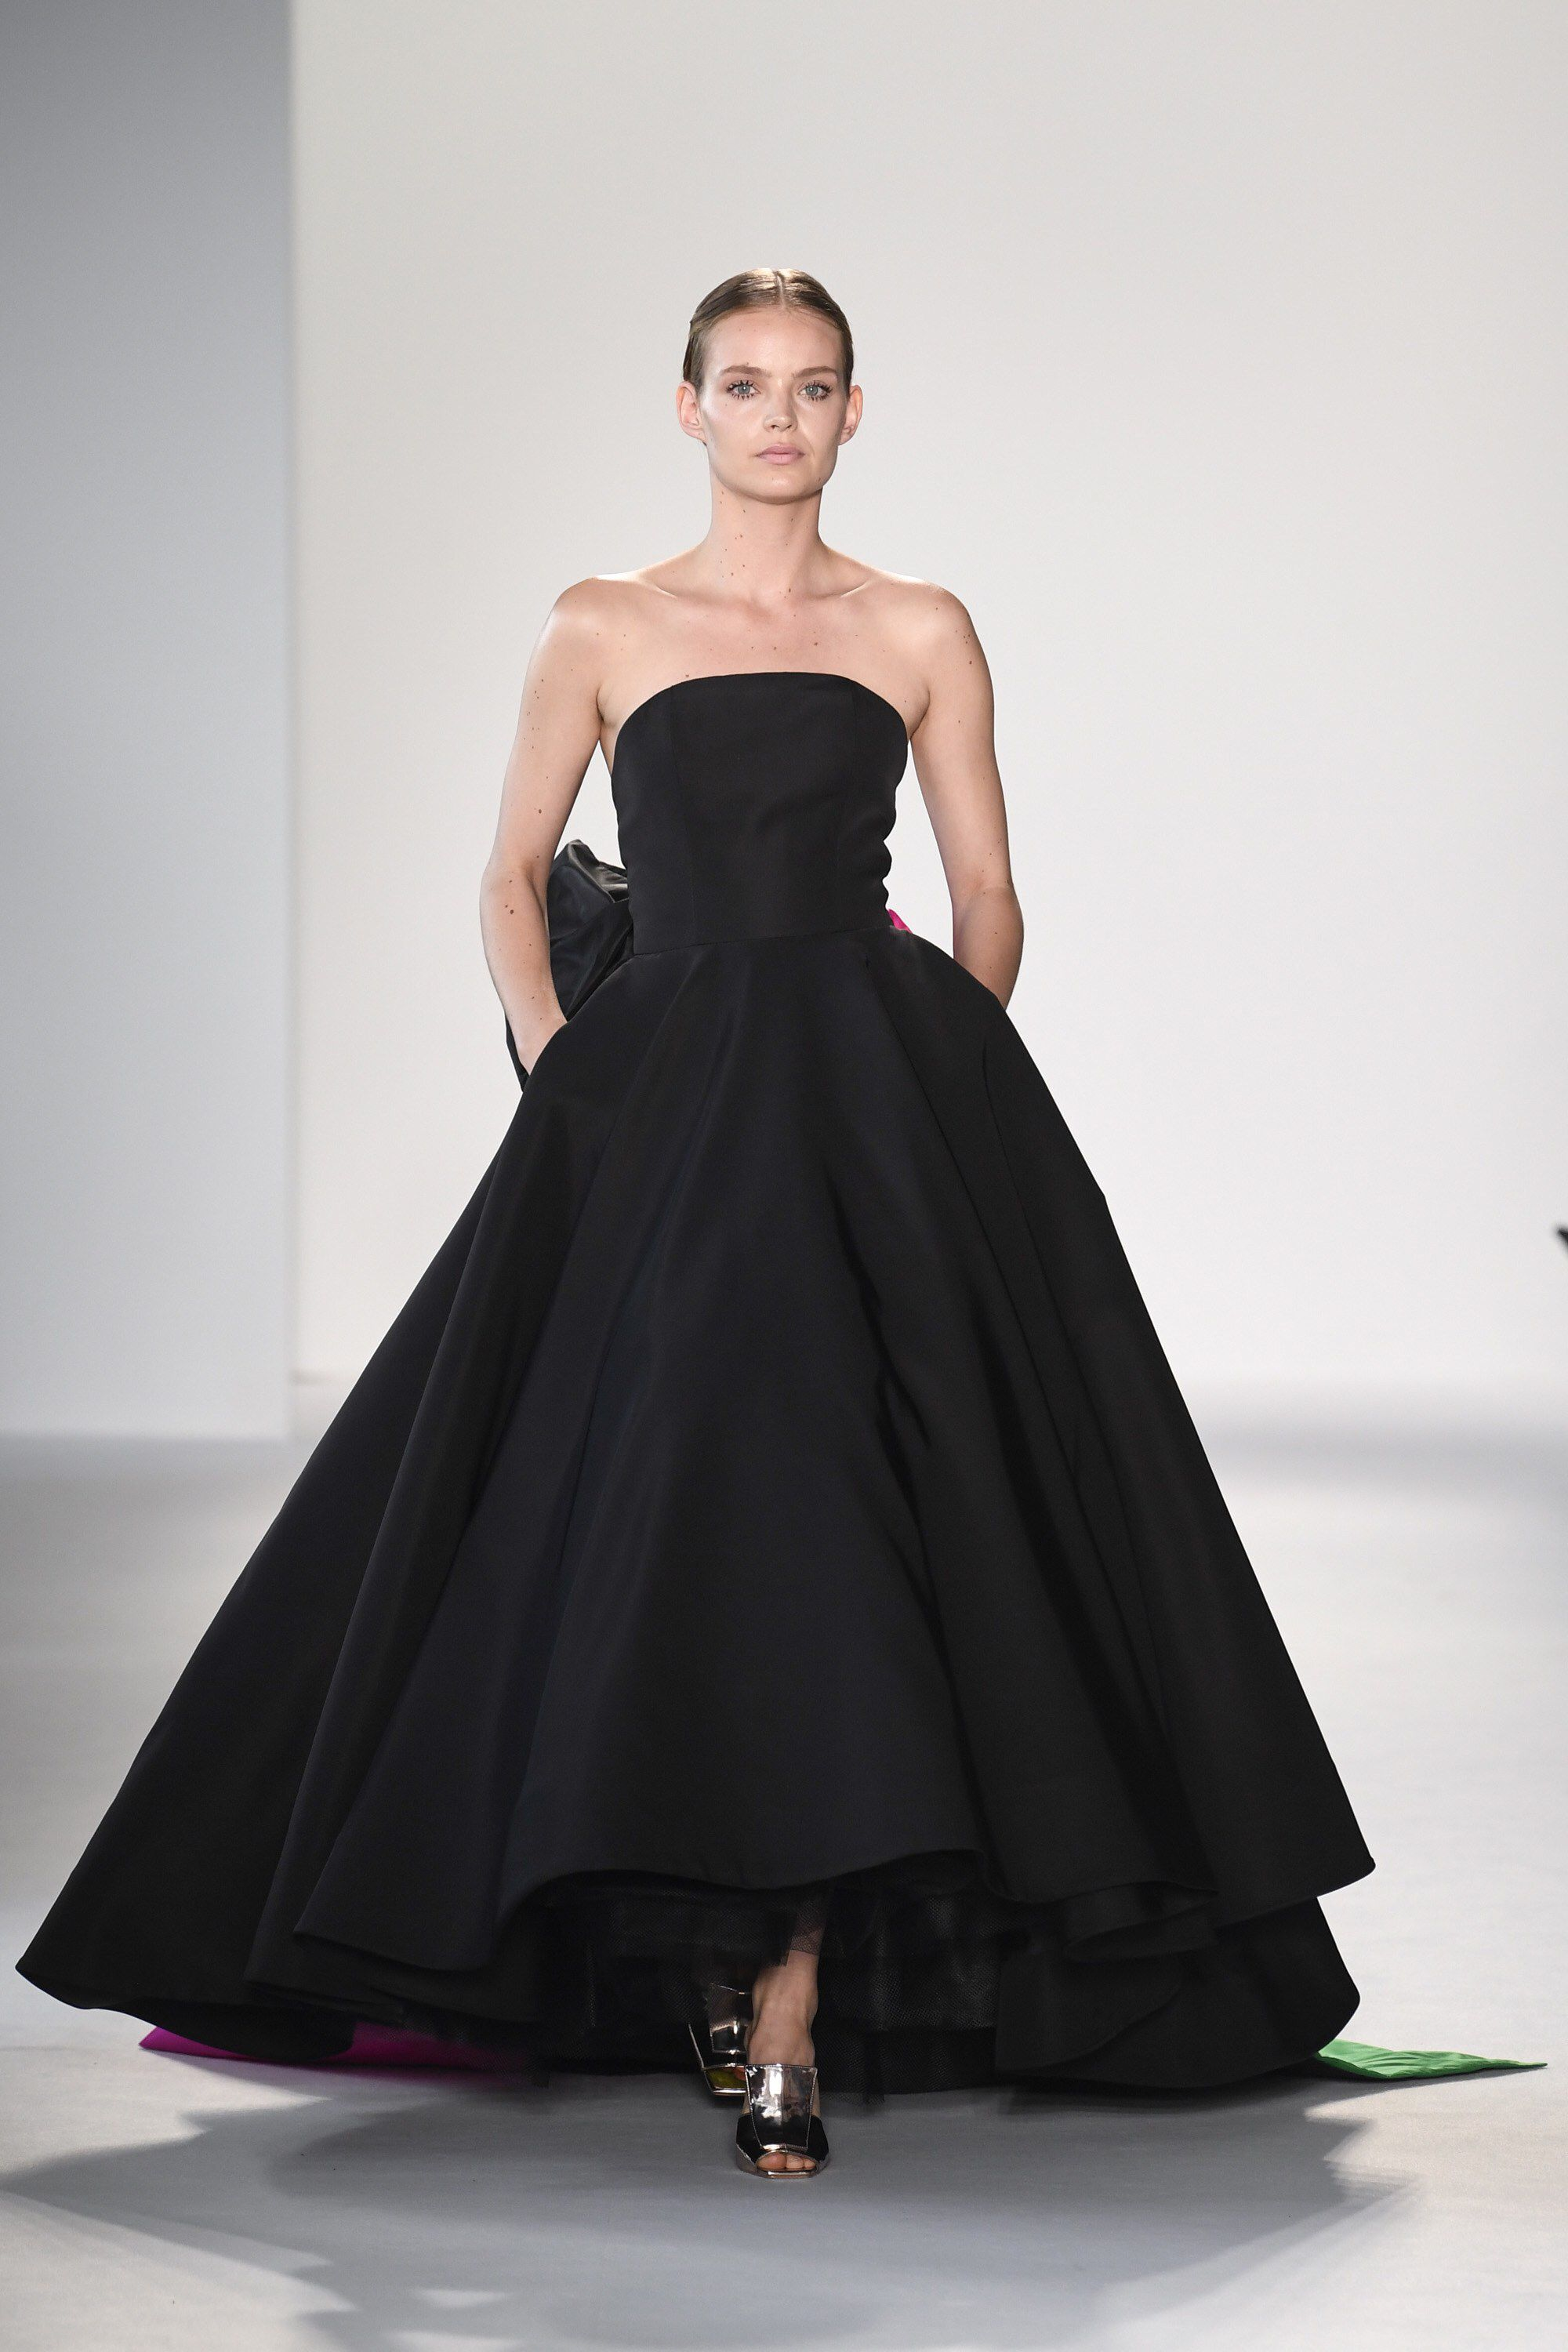 Christian Siriano Spring 2018 Ready-to-Wear Fashion Show Collection ...